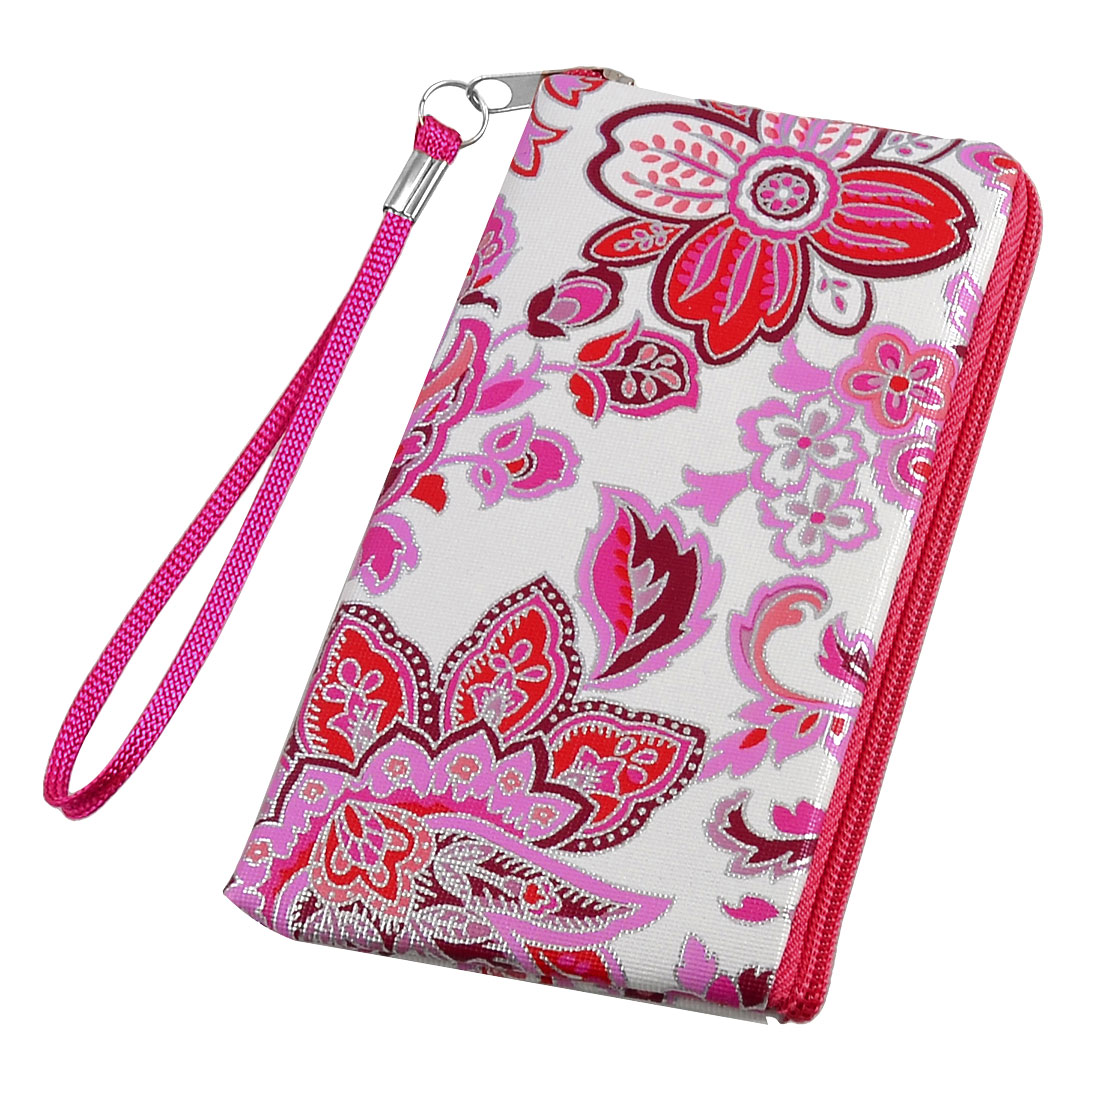 Red White Floral Prints Cell Phone MP3 MP4 Pouch Bag w Strap